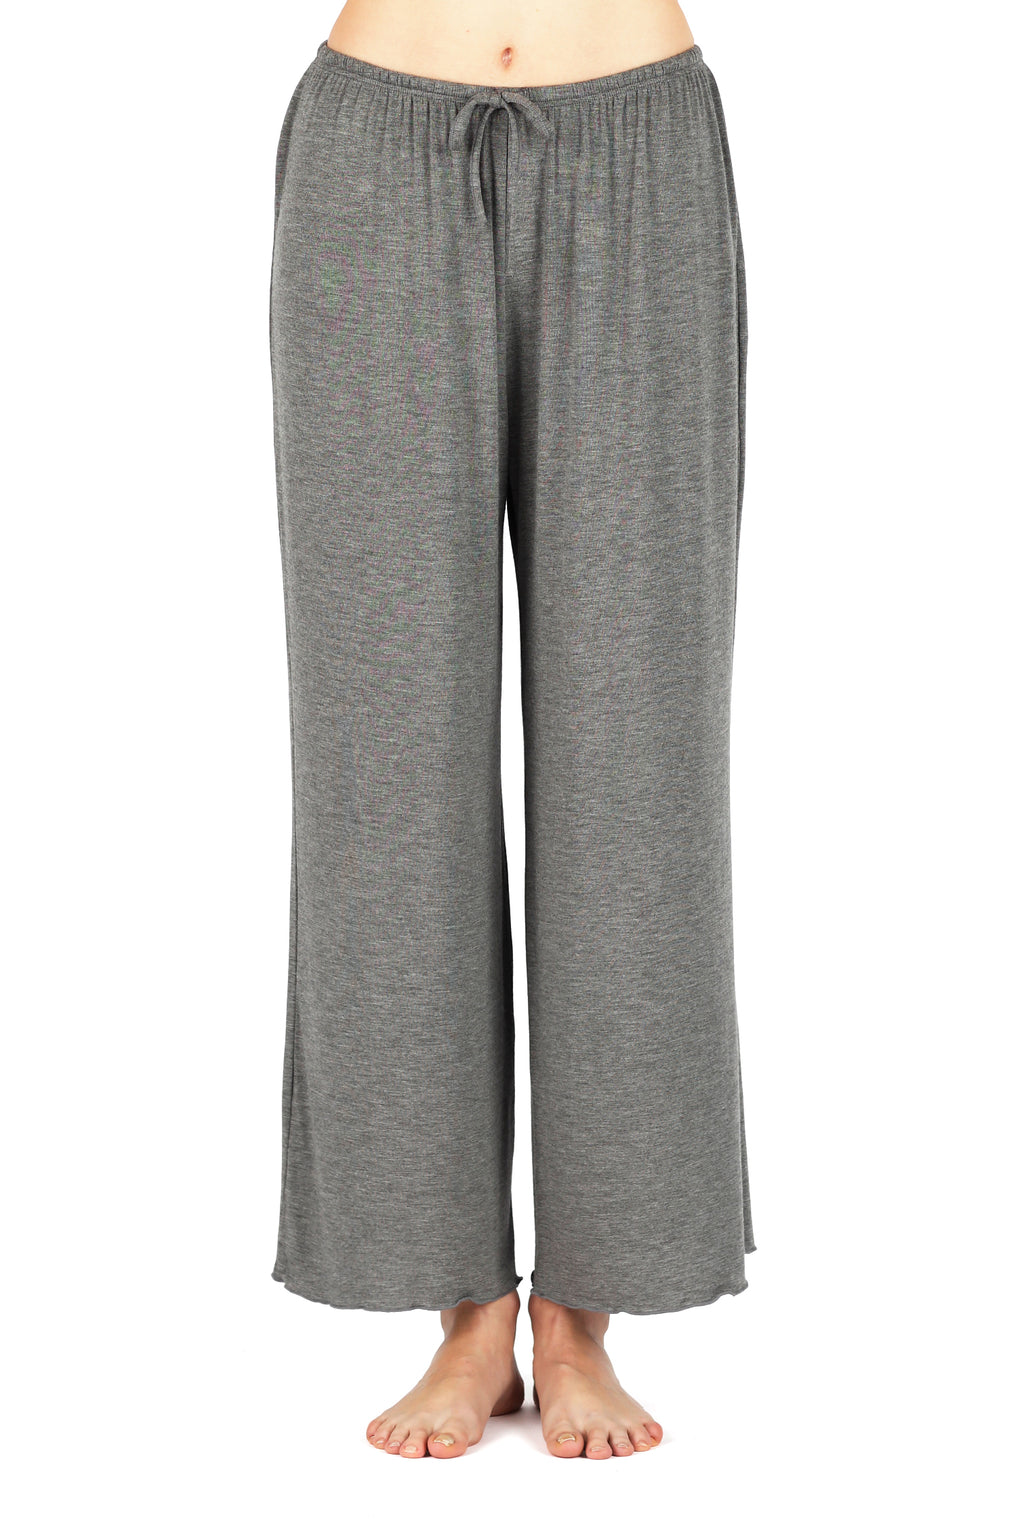 All-Day-Chic Pajama Pant - Charcoal